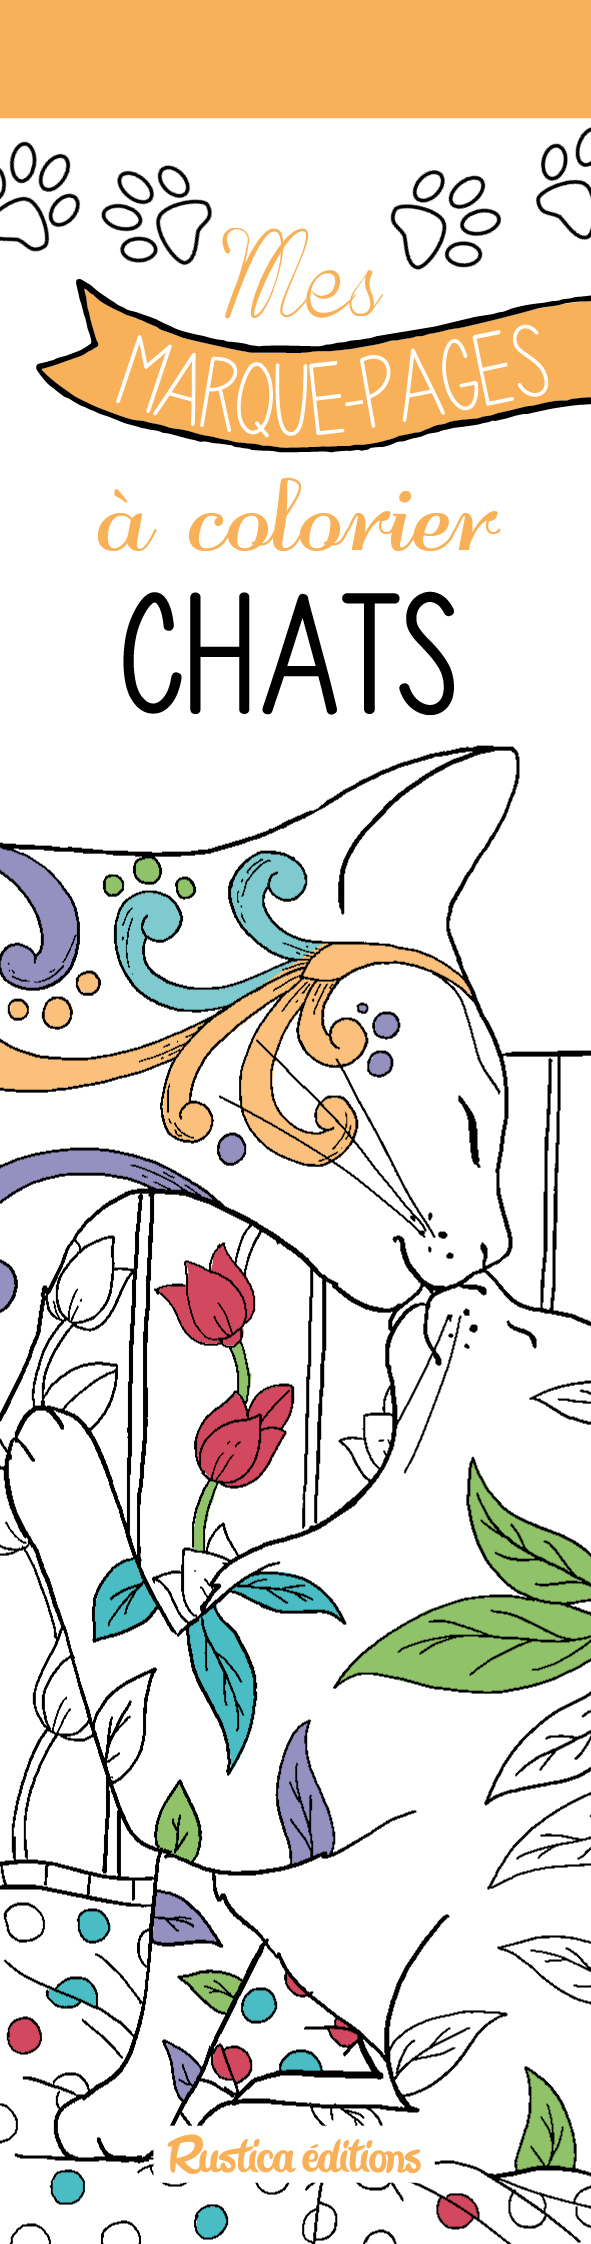 MES MARQUE-PAGES A COLORIER : CHATS